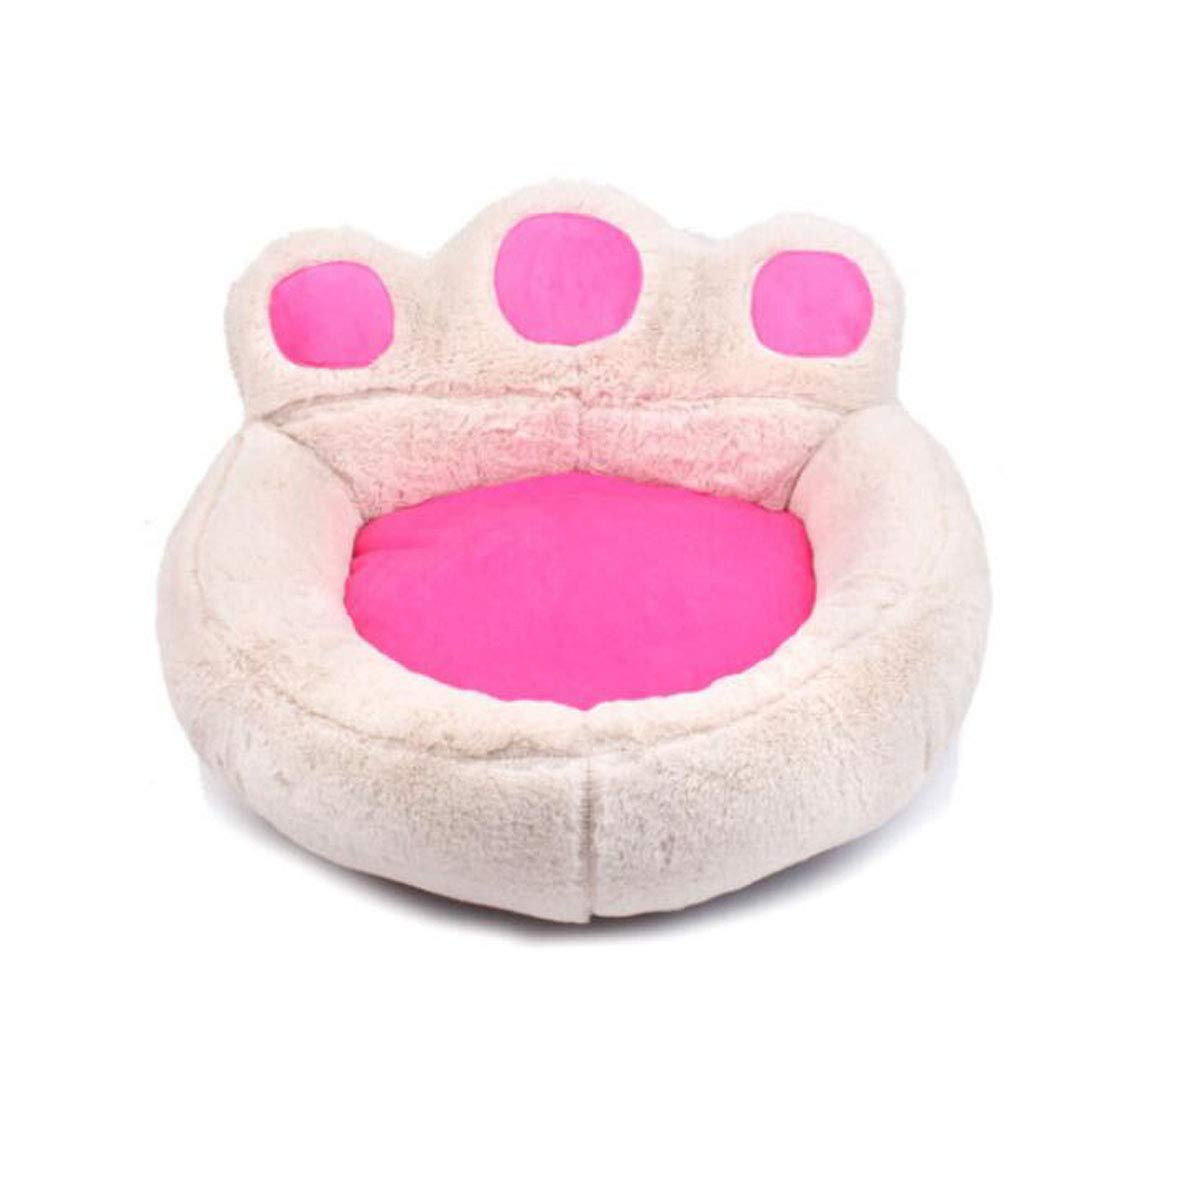 Beige single+pillow blanket STongboshi Suede Pet Bed, Fully Removable And Washable, Four Seasons Universal, Small And Mediumsized Dog, Dog Bed Sofa, Warmth, Teddy, Bichon VIP Thickened Cat Mattress, Pink Single Nest + Pillow Bla